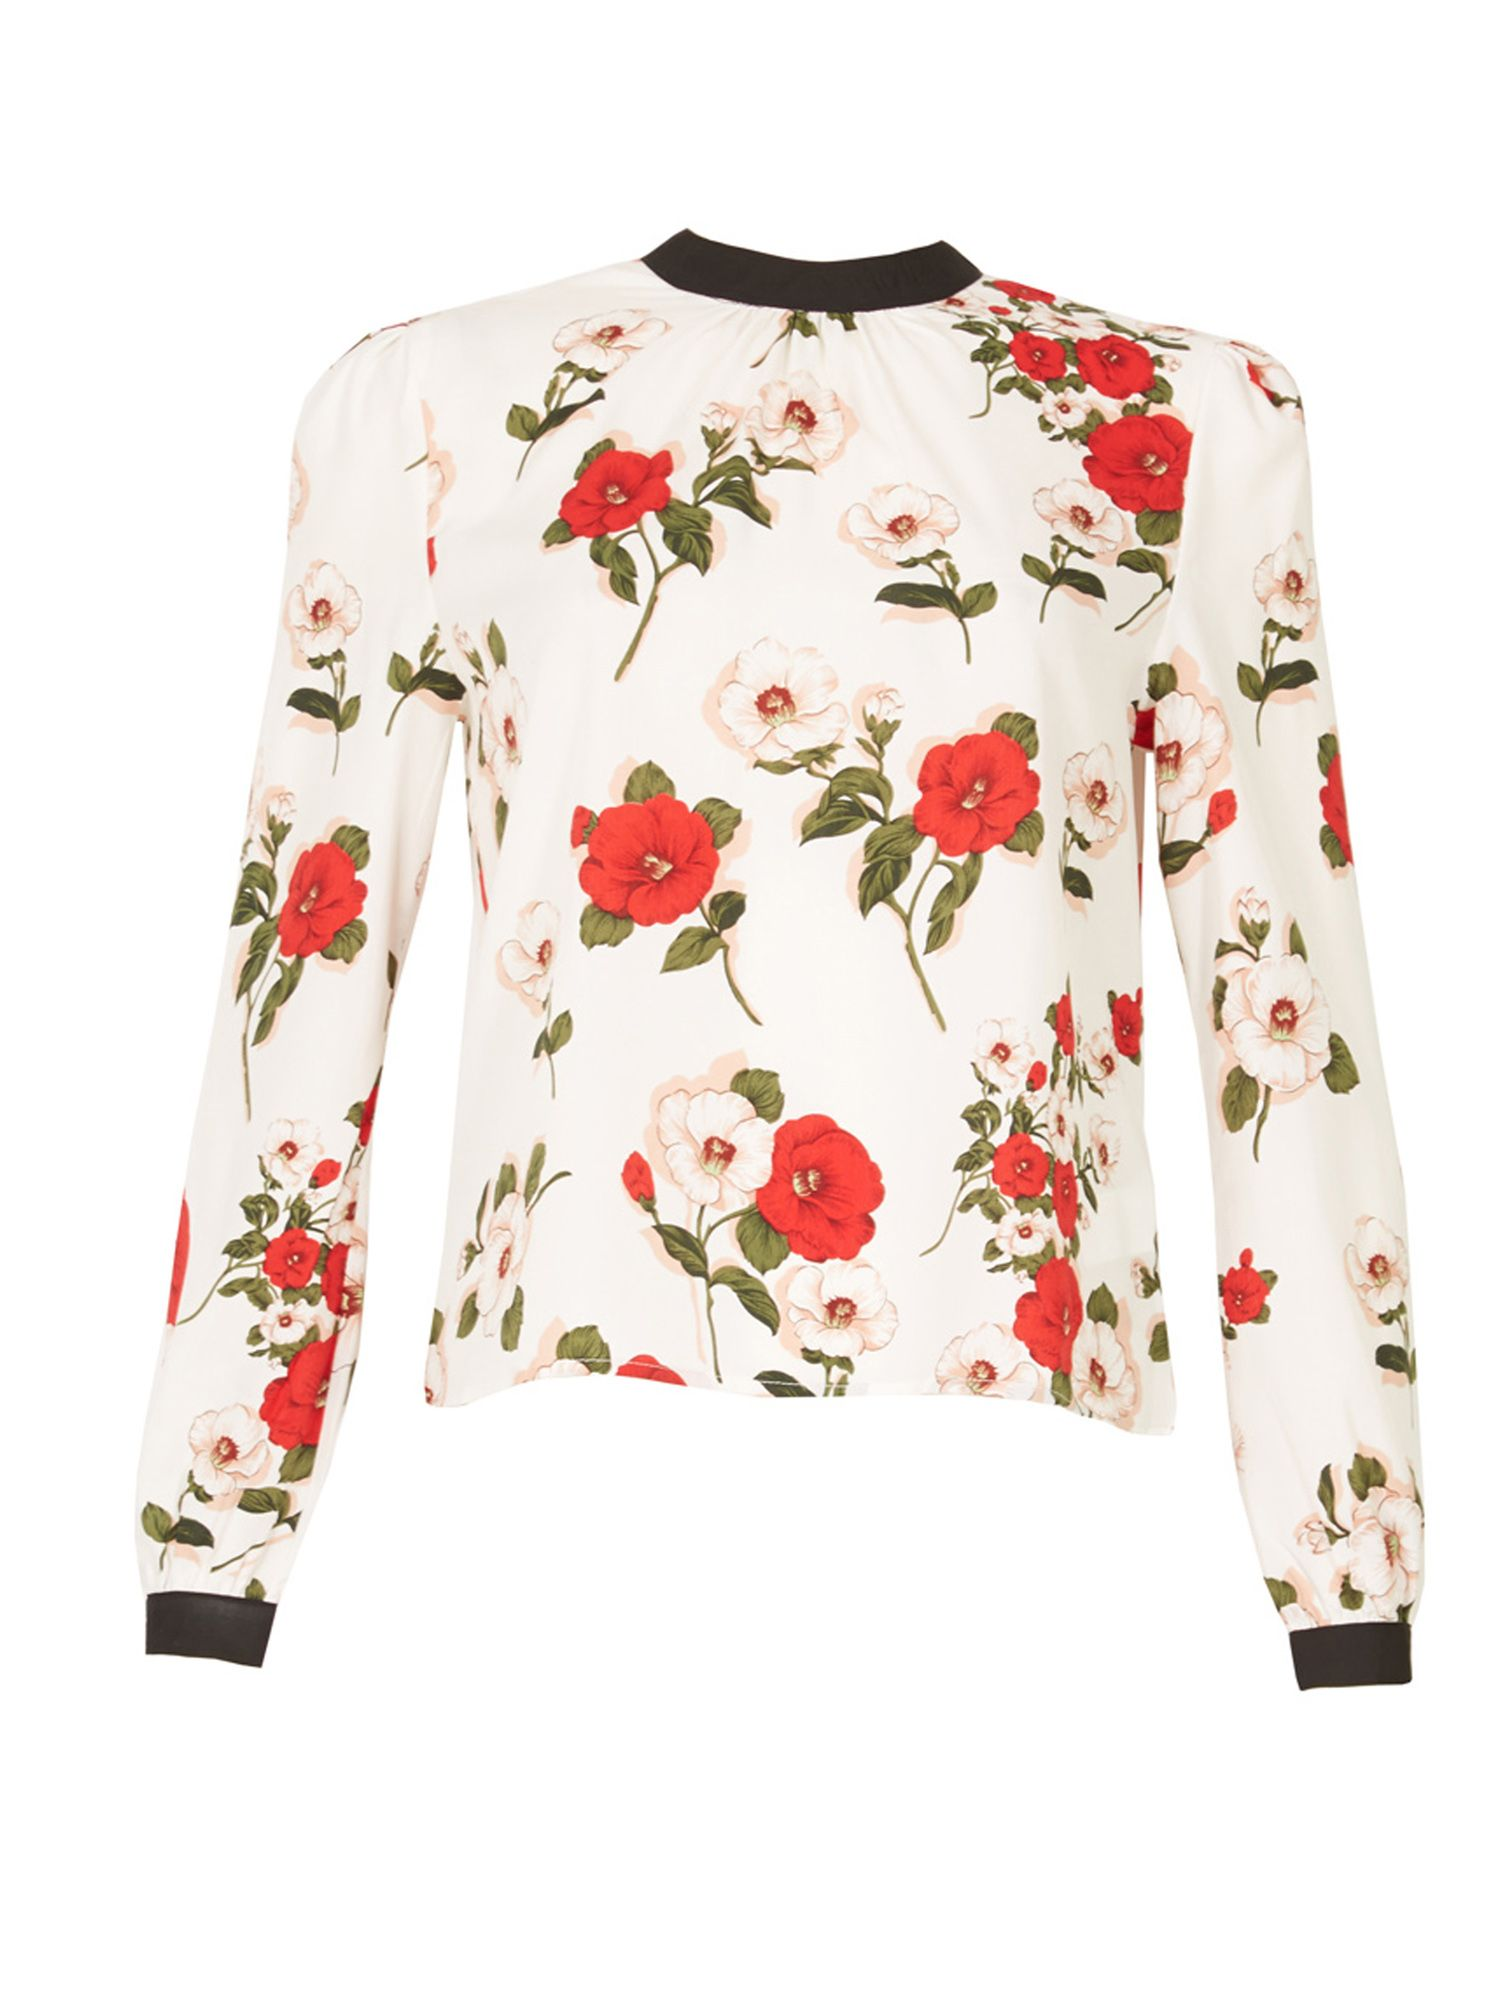 MISSTRUTH Floral Print Contrast Collar Top, Multi-Coloured